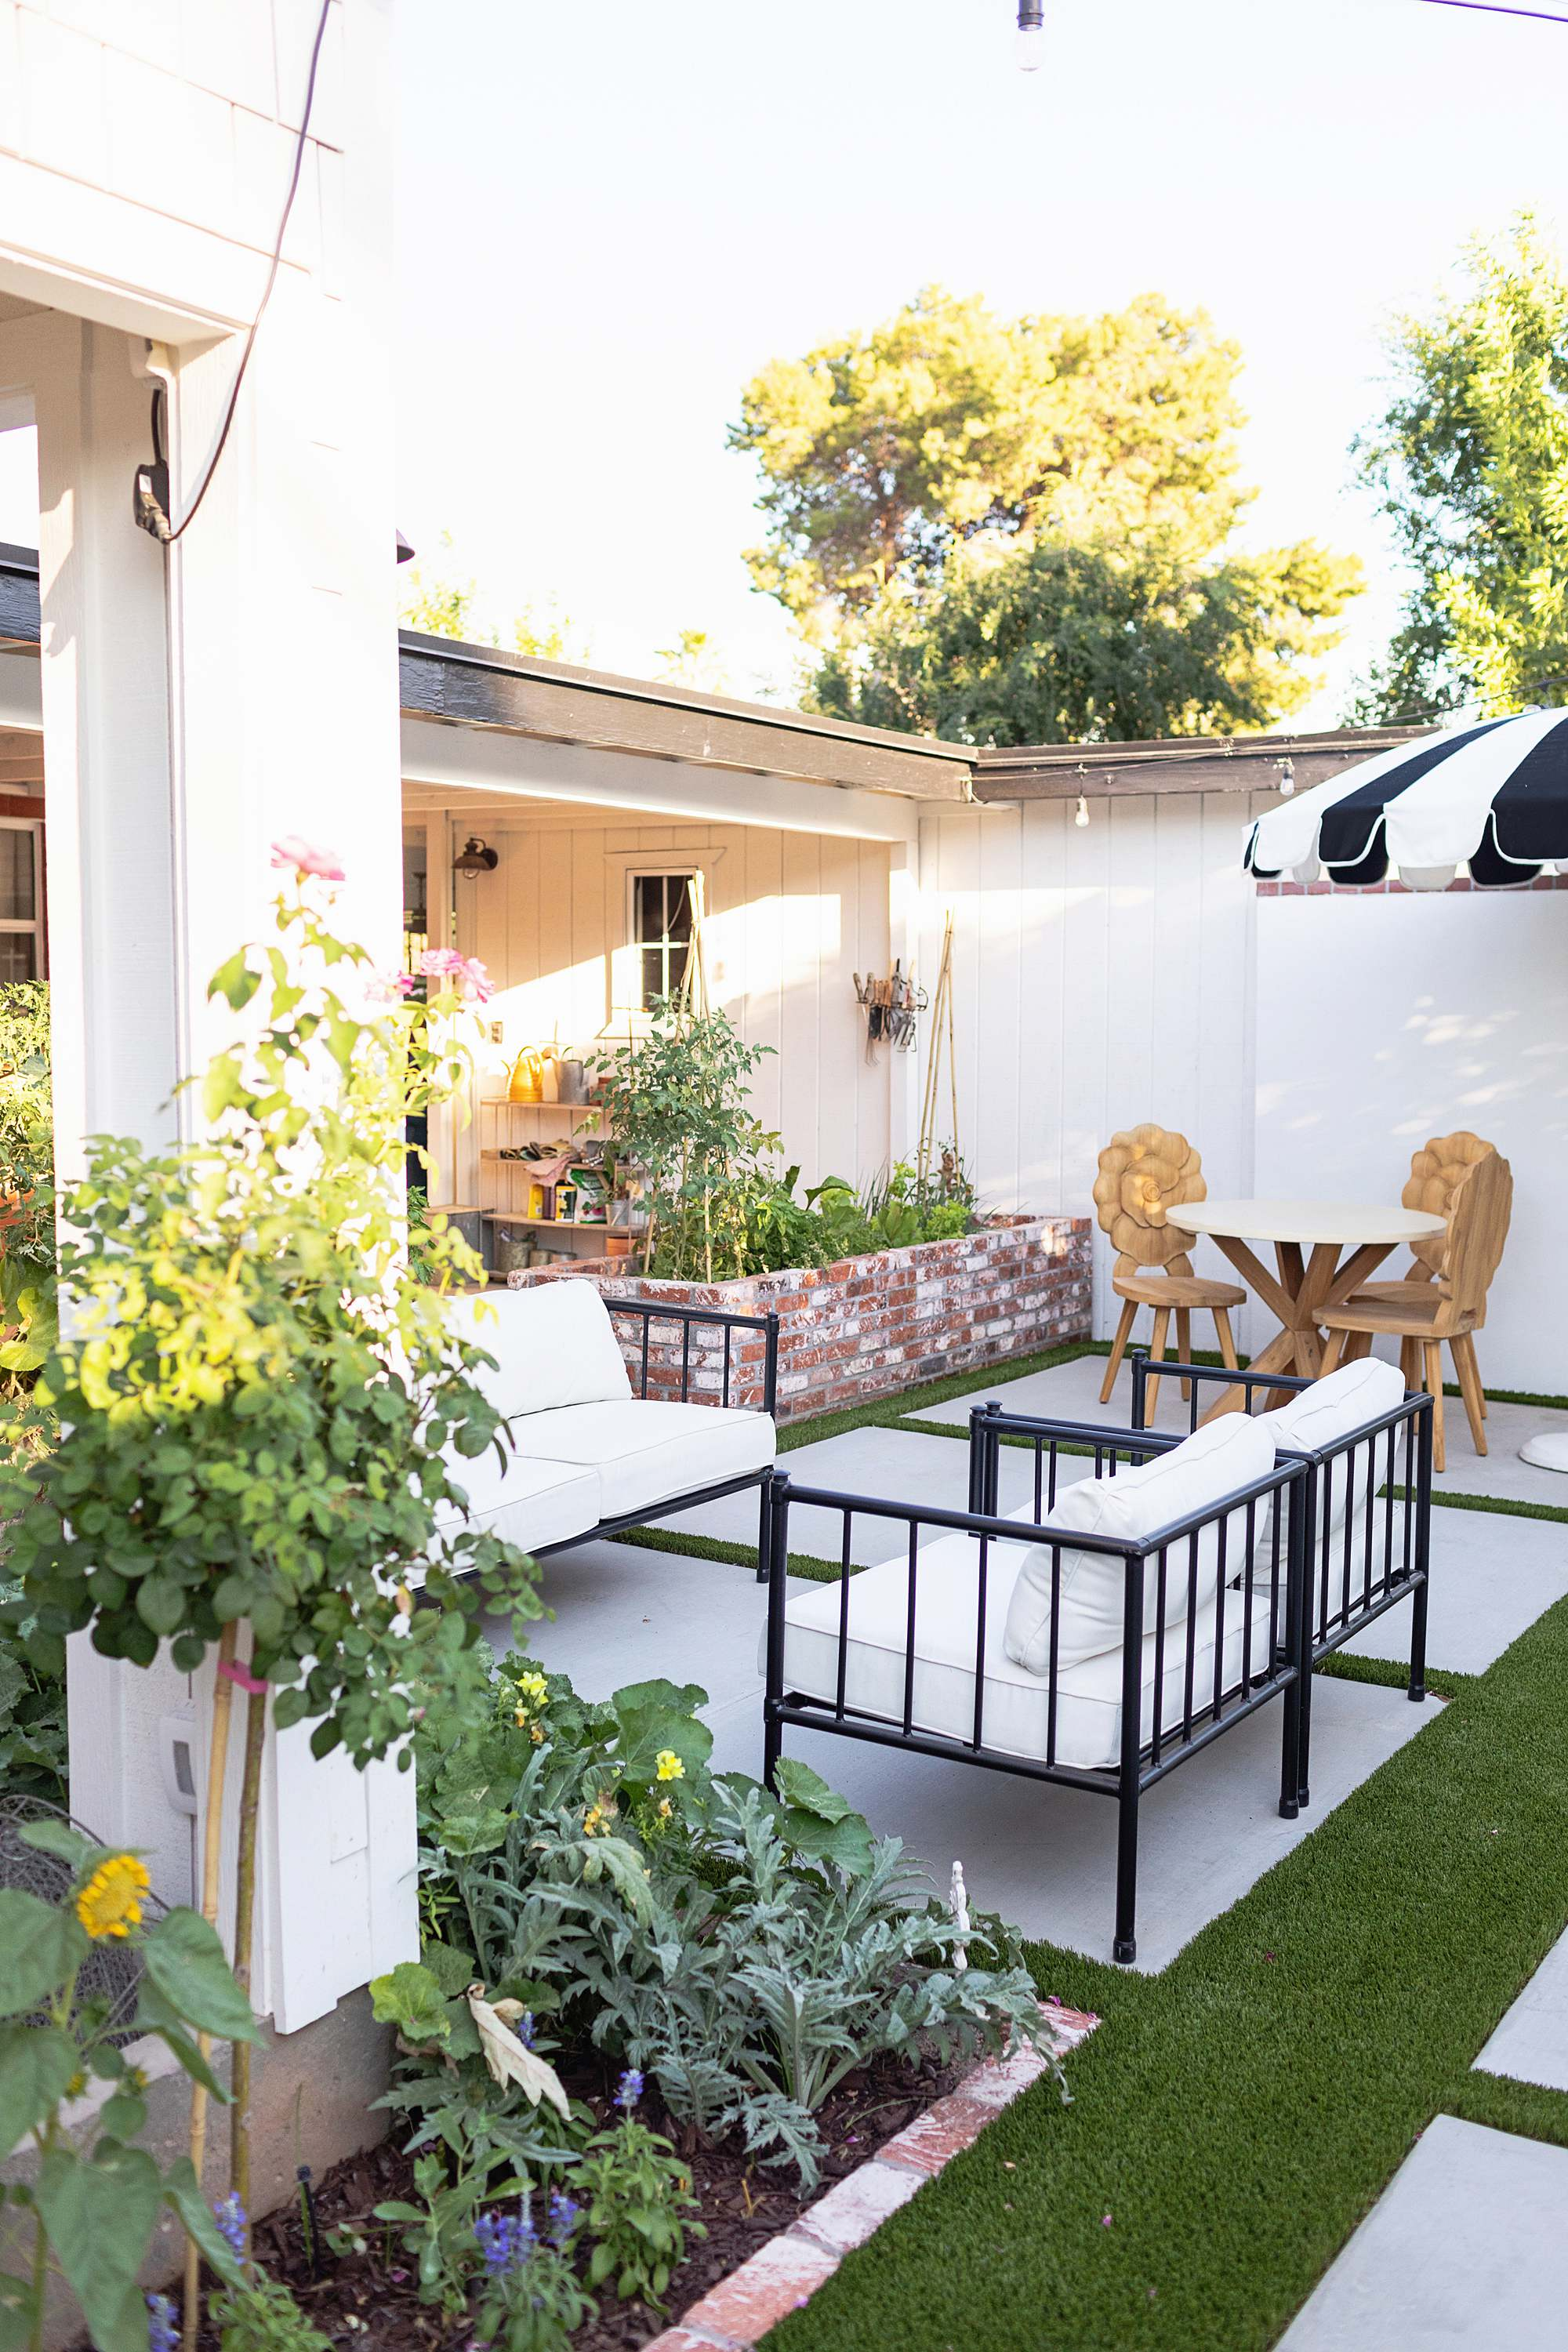 AFTER photos of new patio kitchen garden area - patio seating black and white with flower teak chairs #garden #backyard